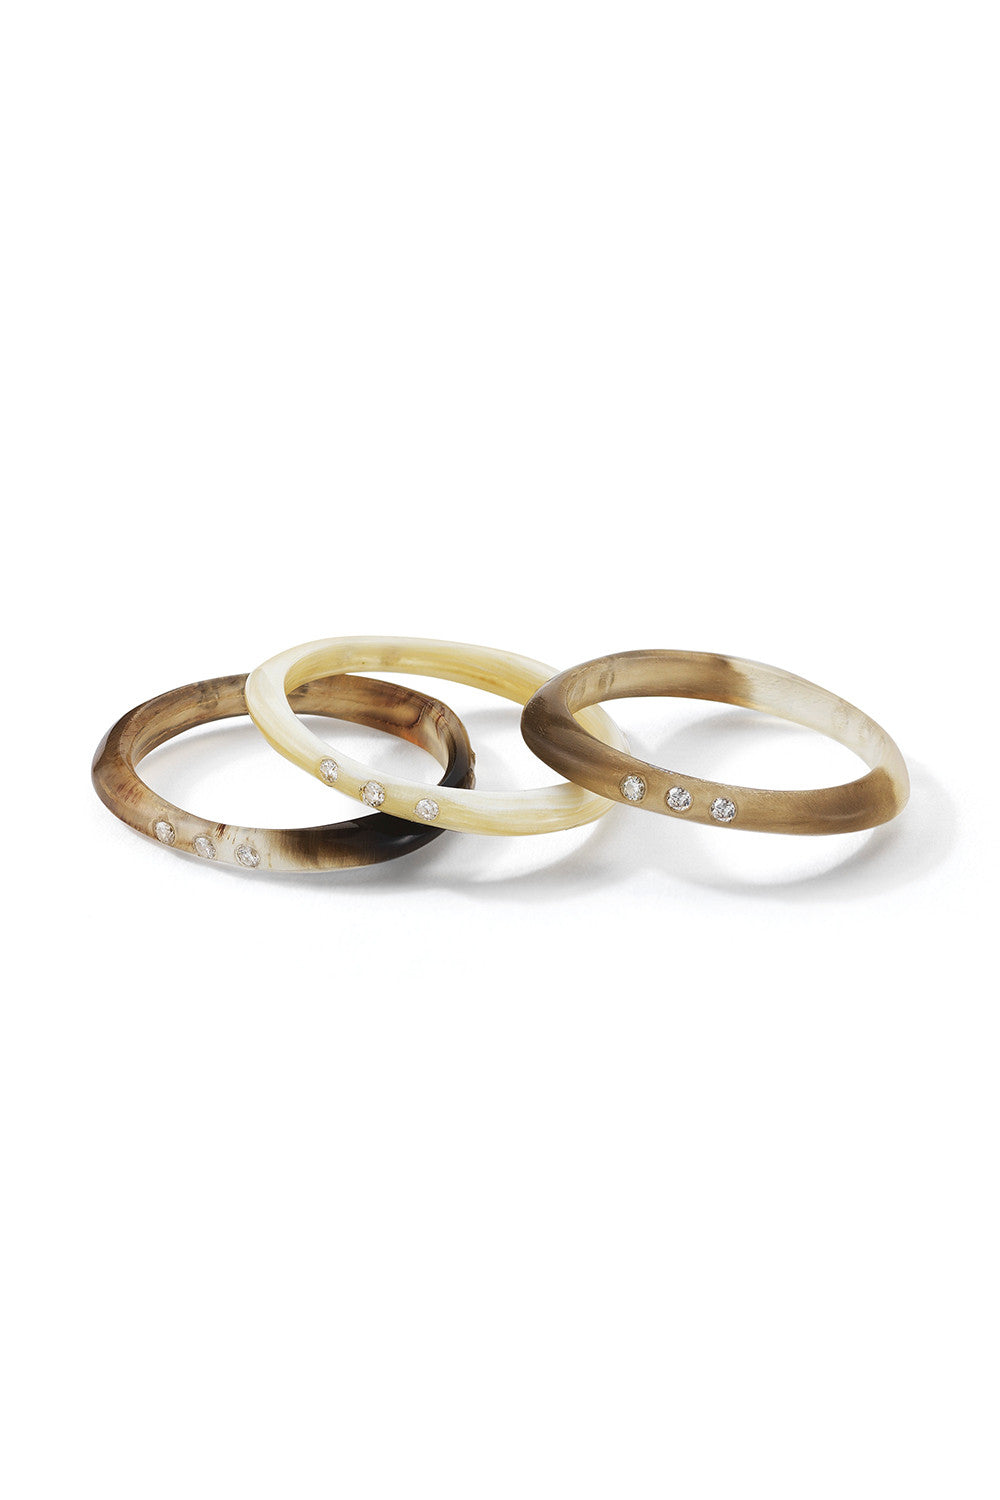 HALO Water Buffalo Horn Stackable Rings in Set of 3